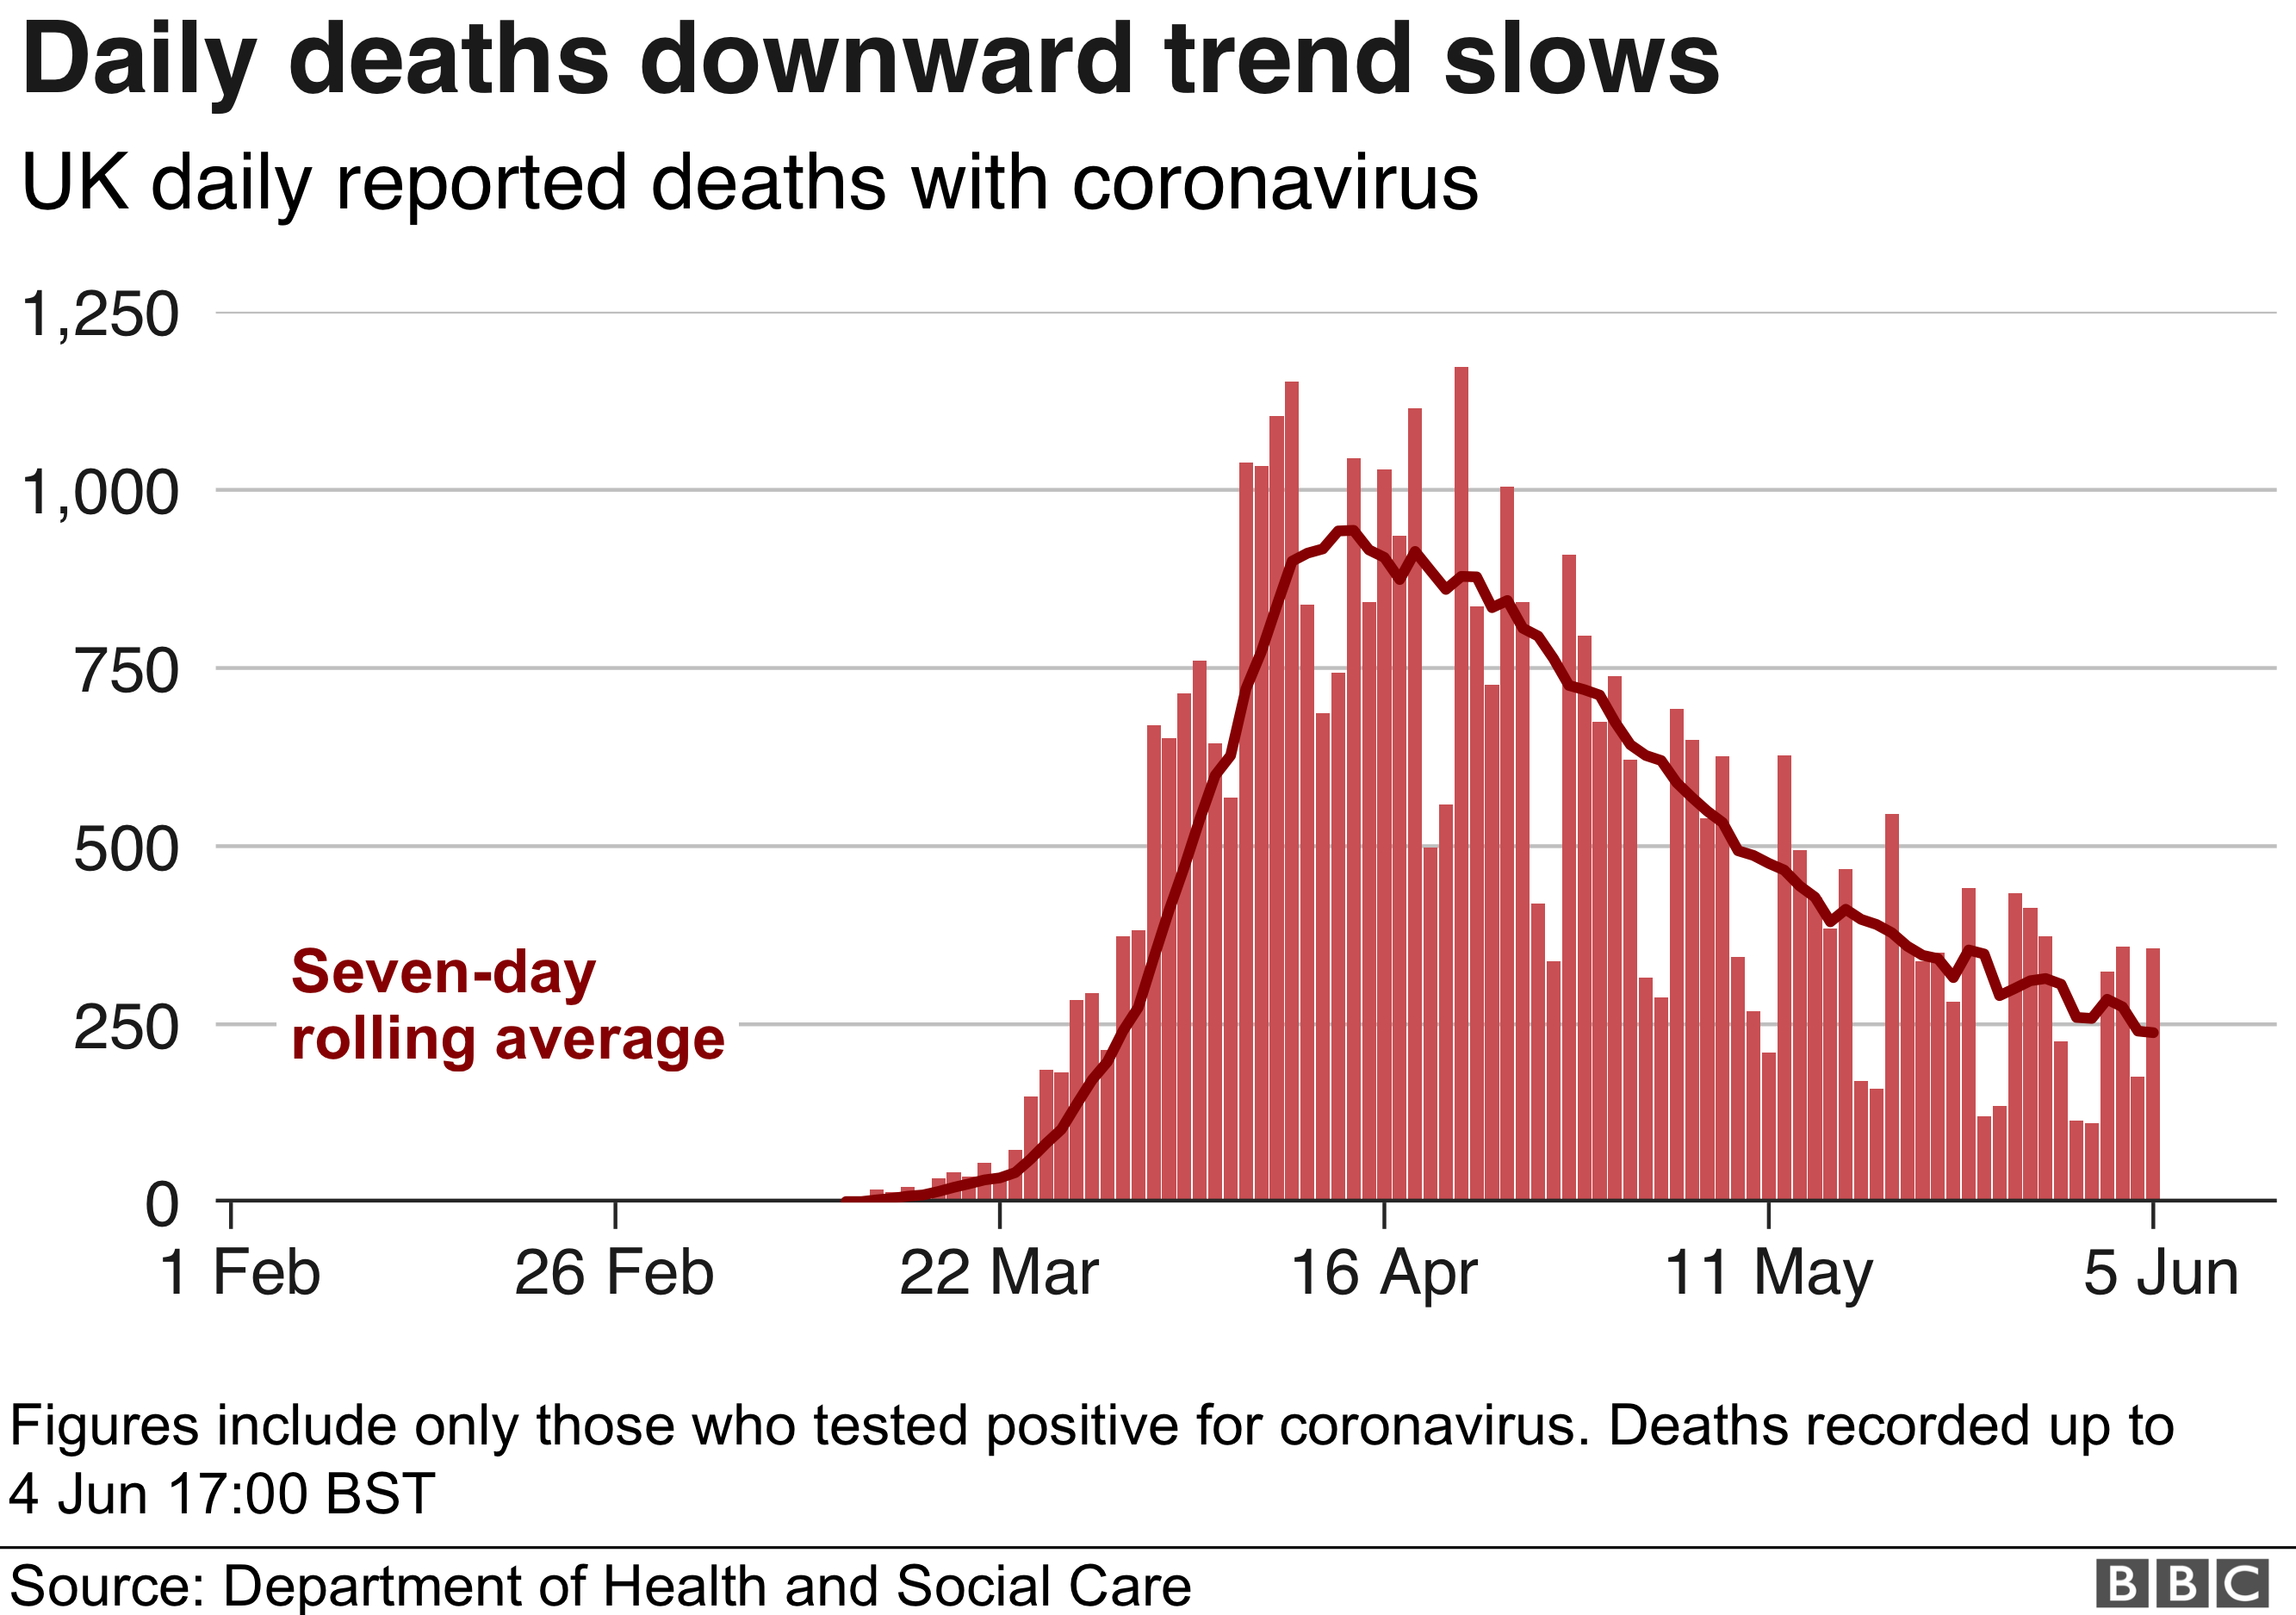 Graph showing daily reported coronavirus deaths in UK